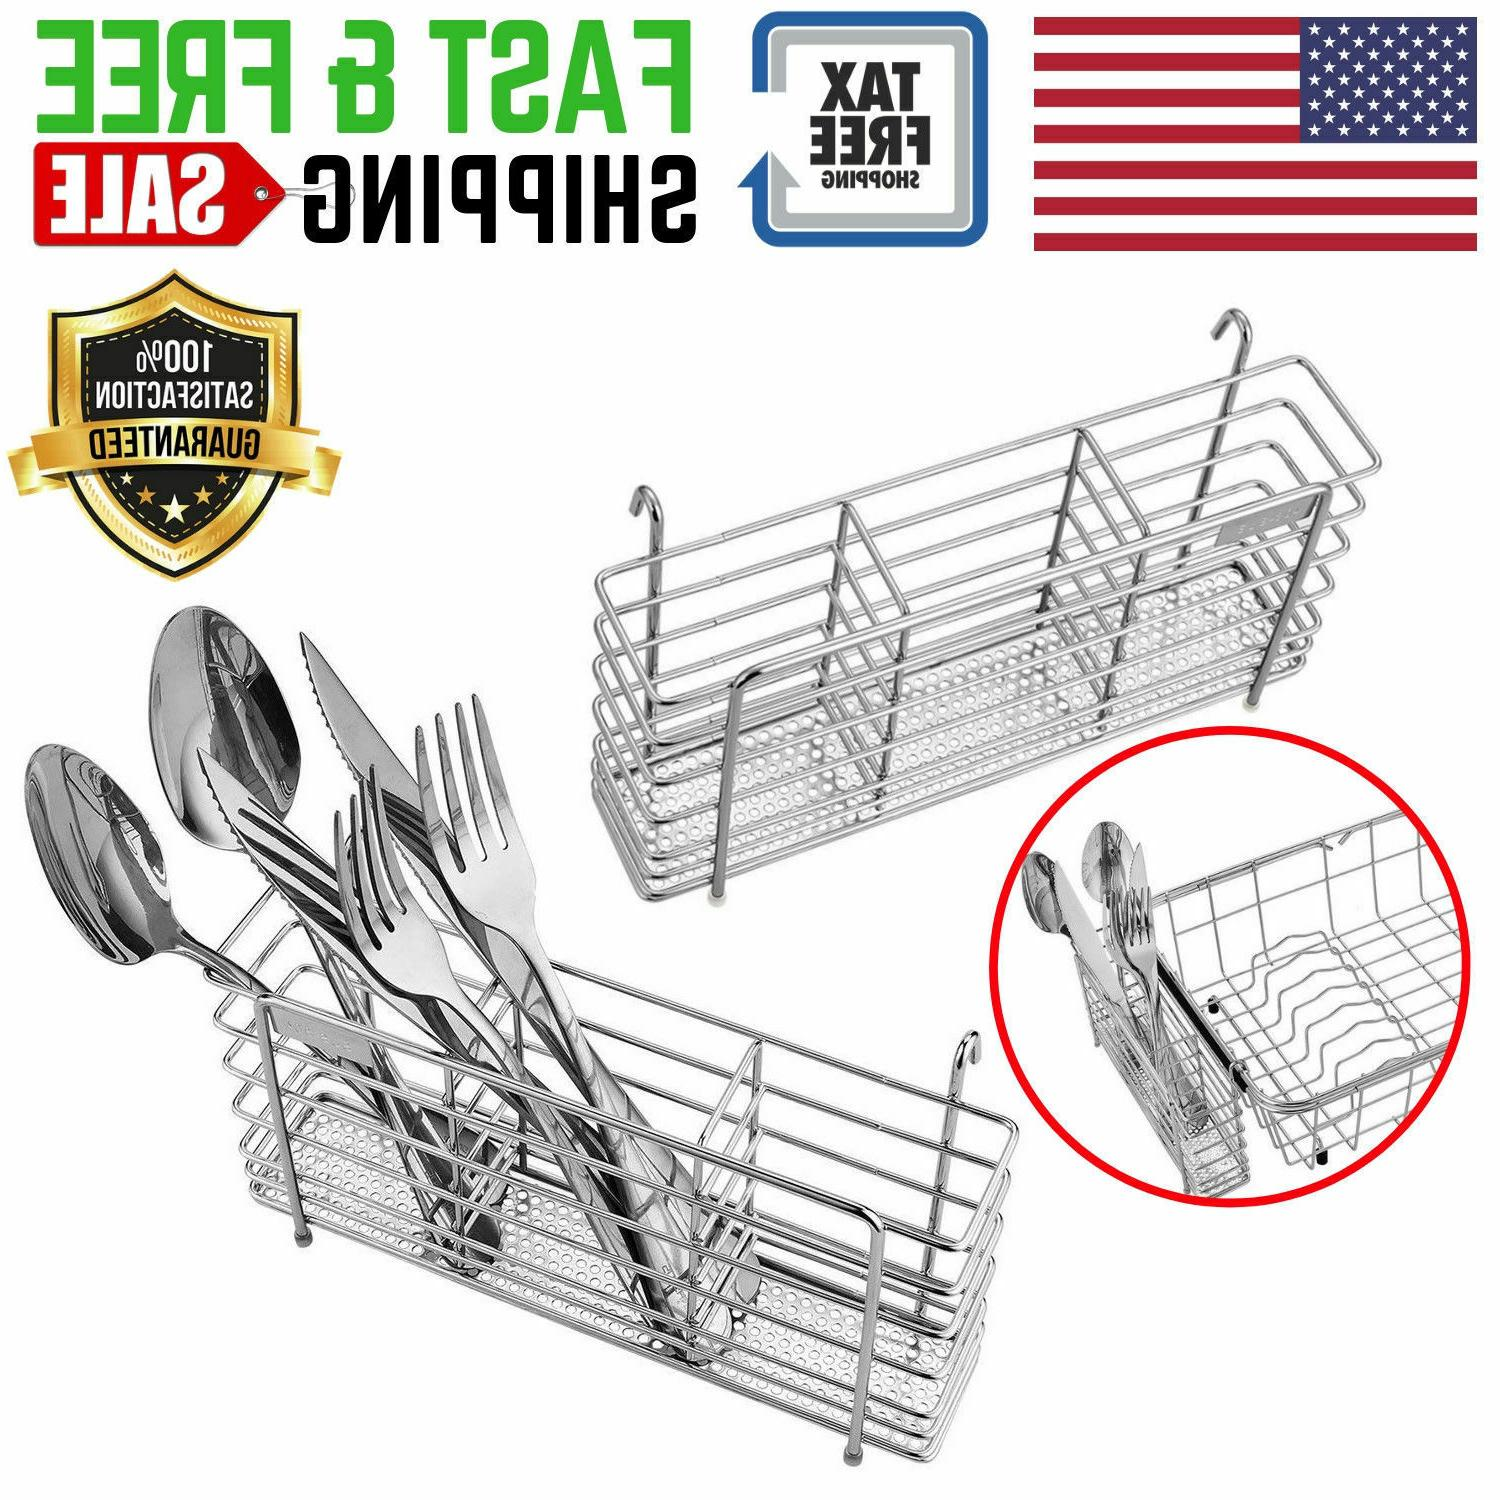 stainless steel basket holder 3 compartment